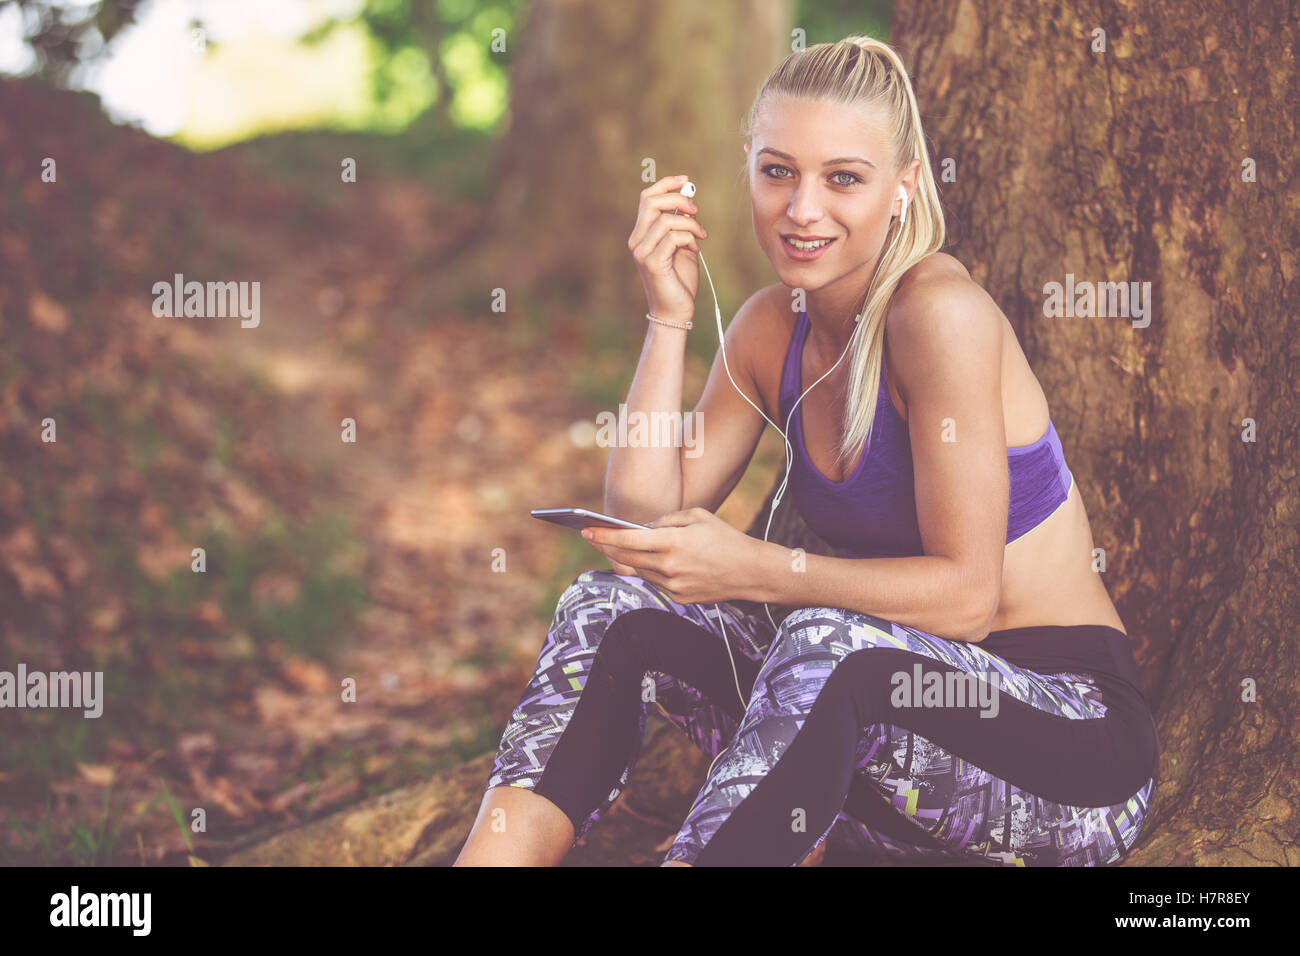 Breathing deep during jogging in the forest Stock Photo